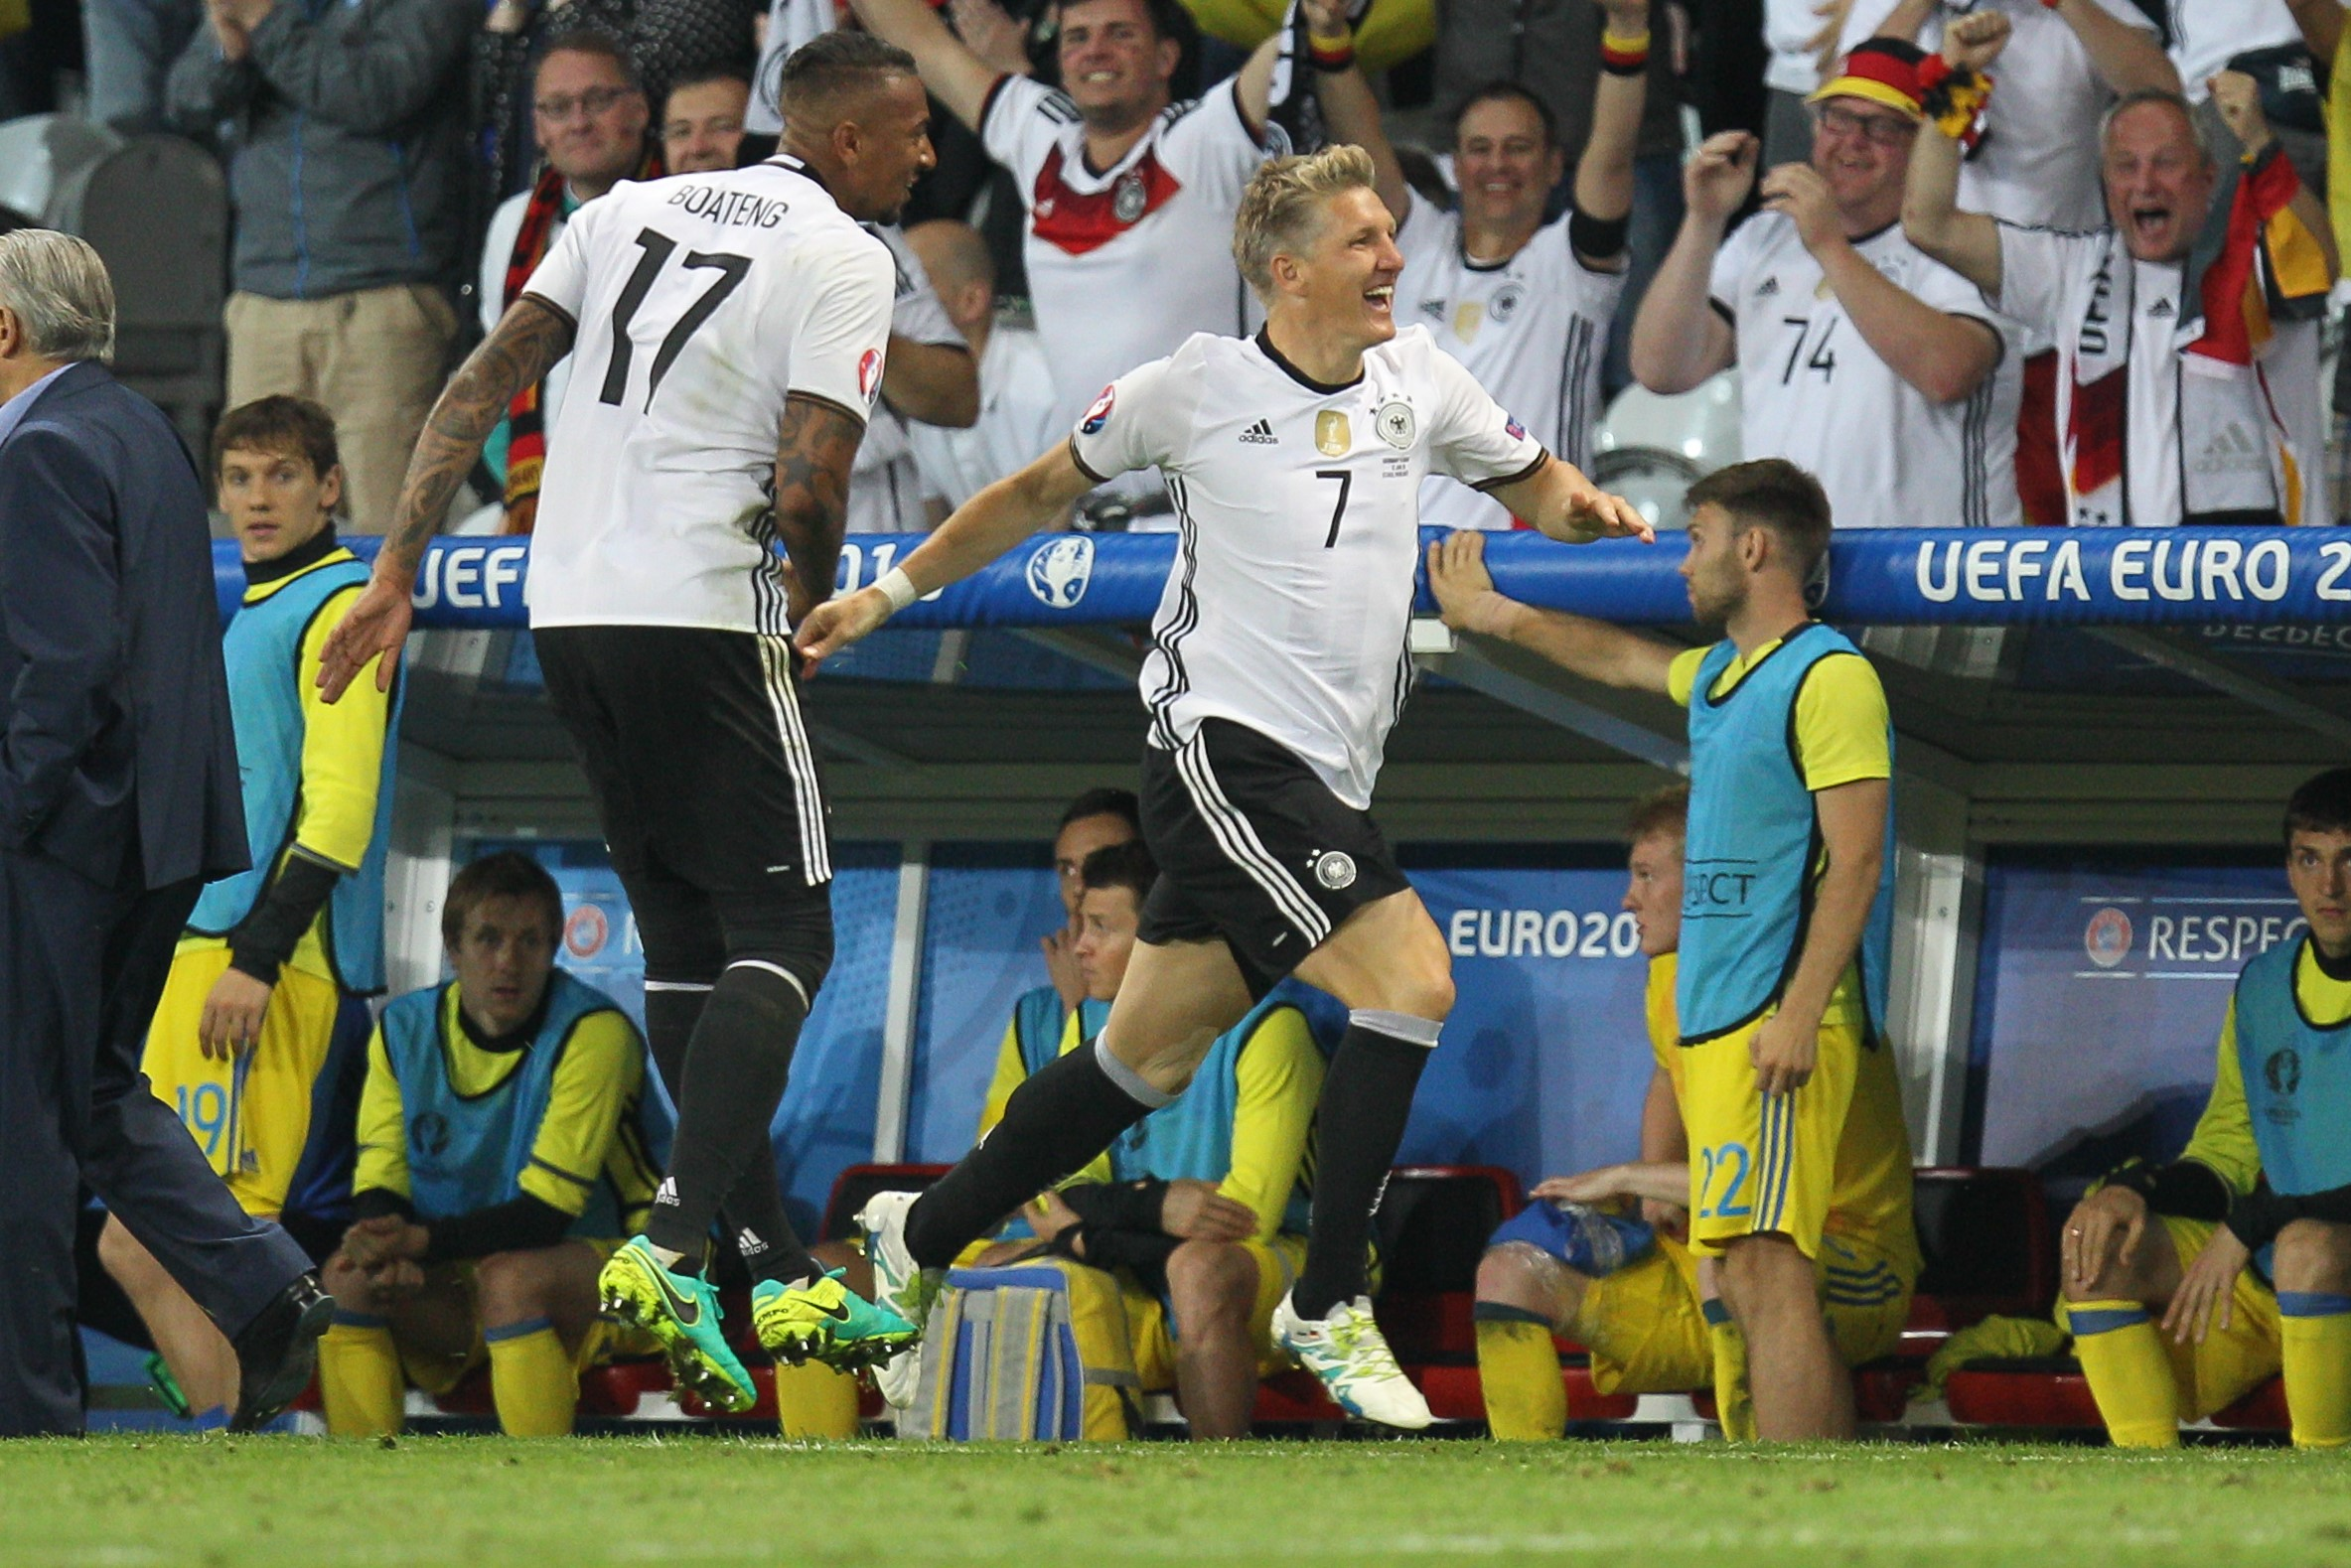 Germany won, but their weaknesses were on full display